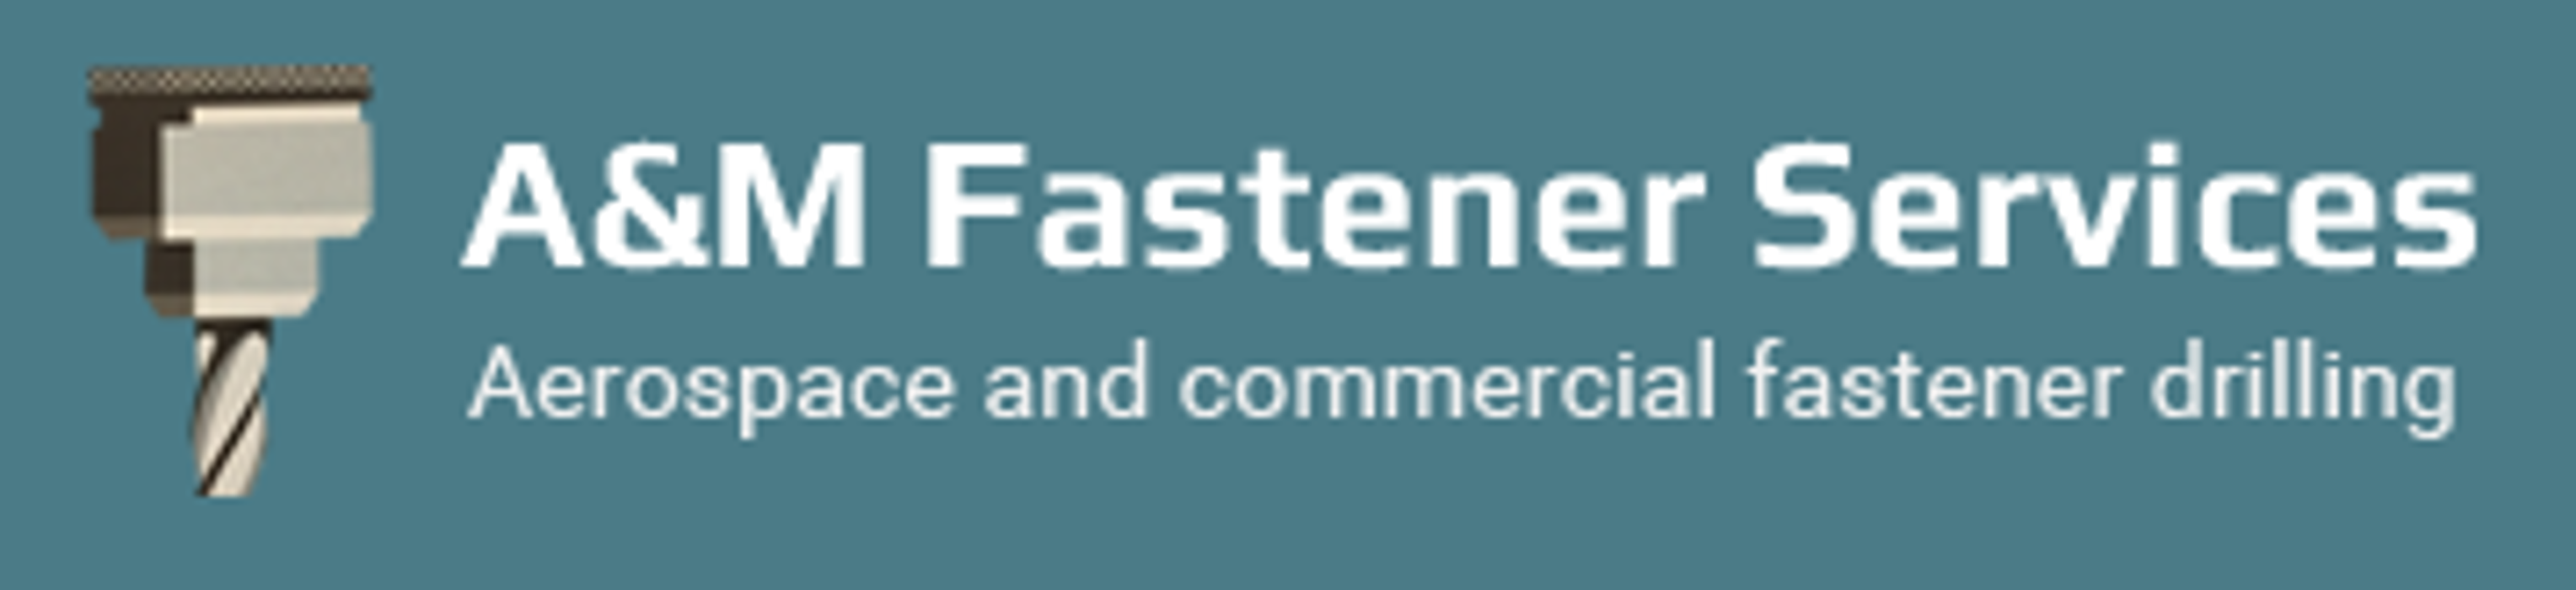 A&M Fastener Services - Los Angeles, CA